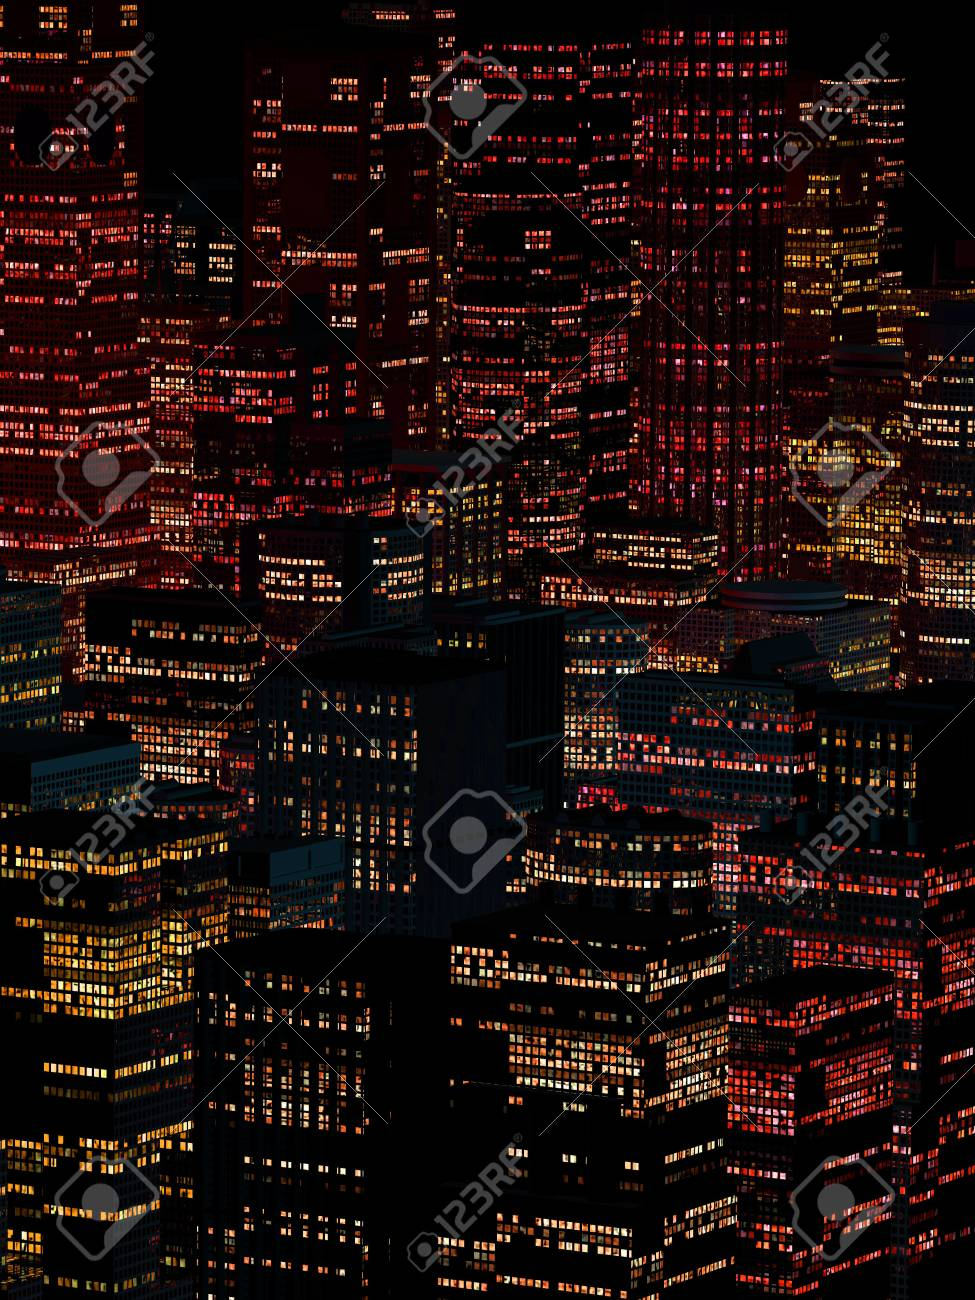 night landscape of a city with tall houses - 96991199